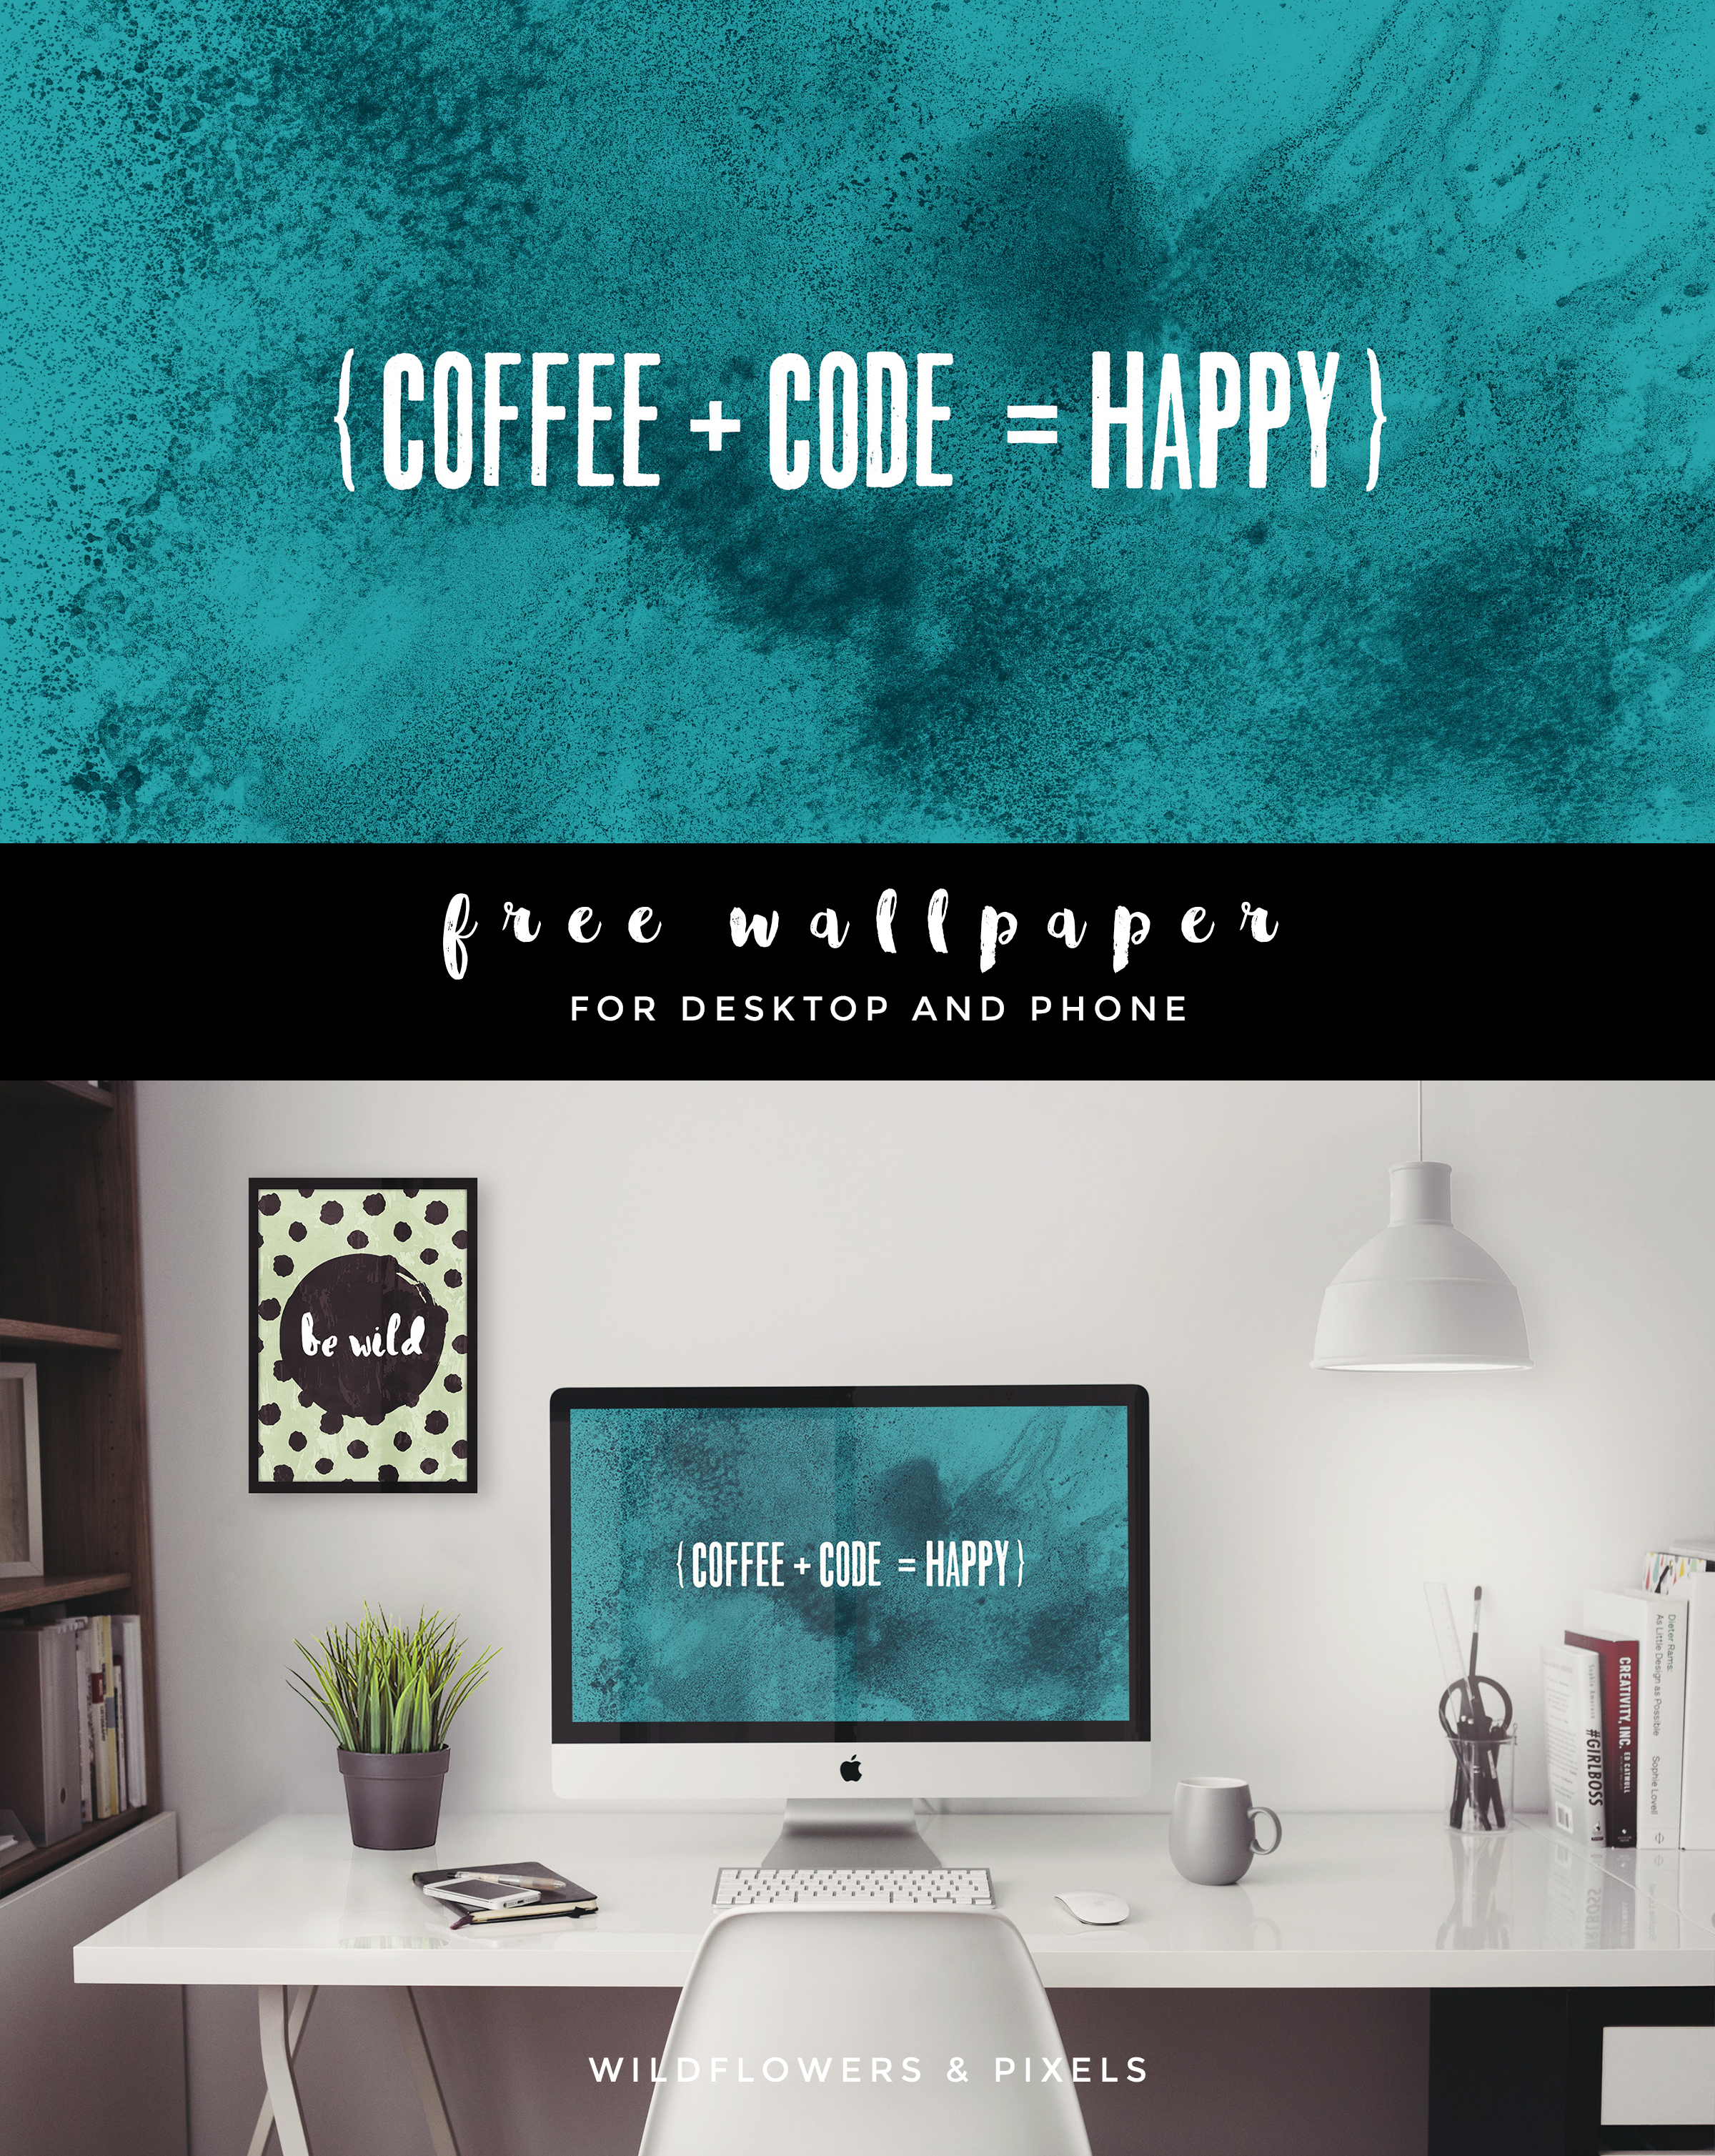 Coffee Code Happy Free Wallpaper